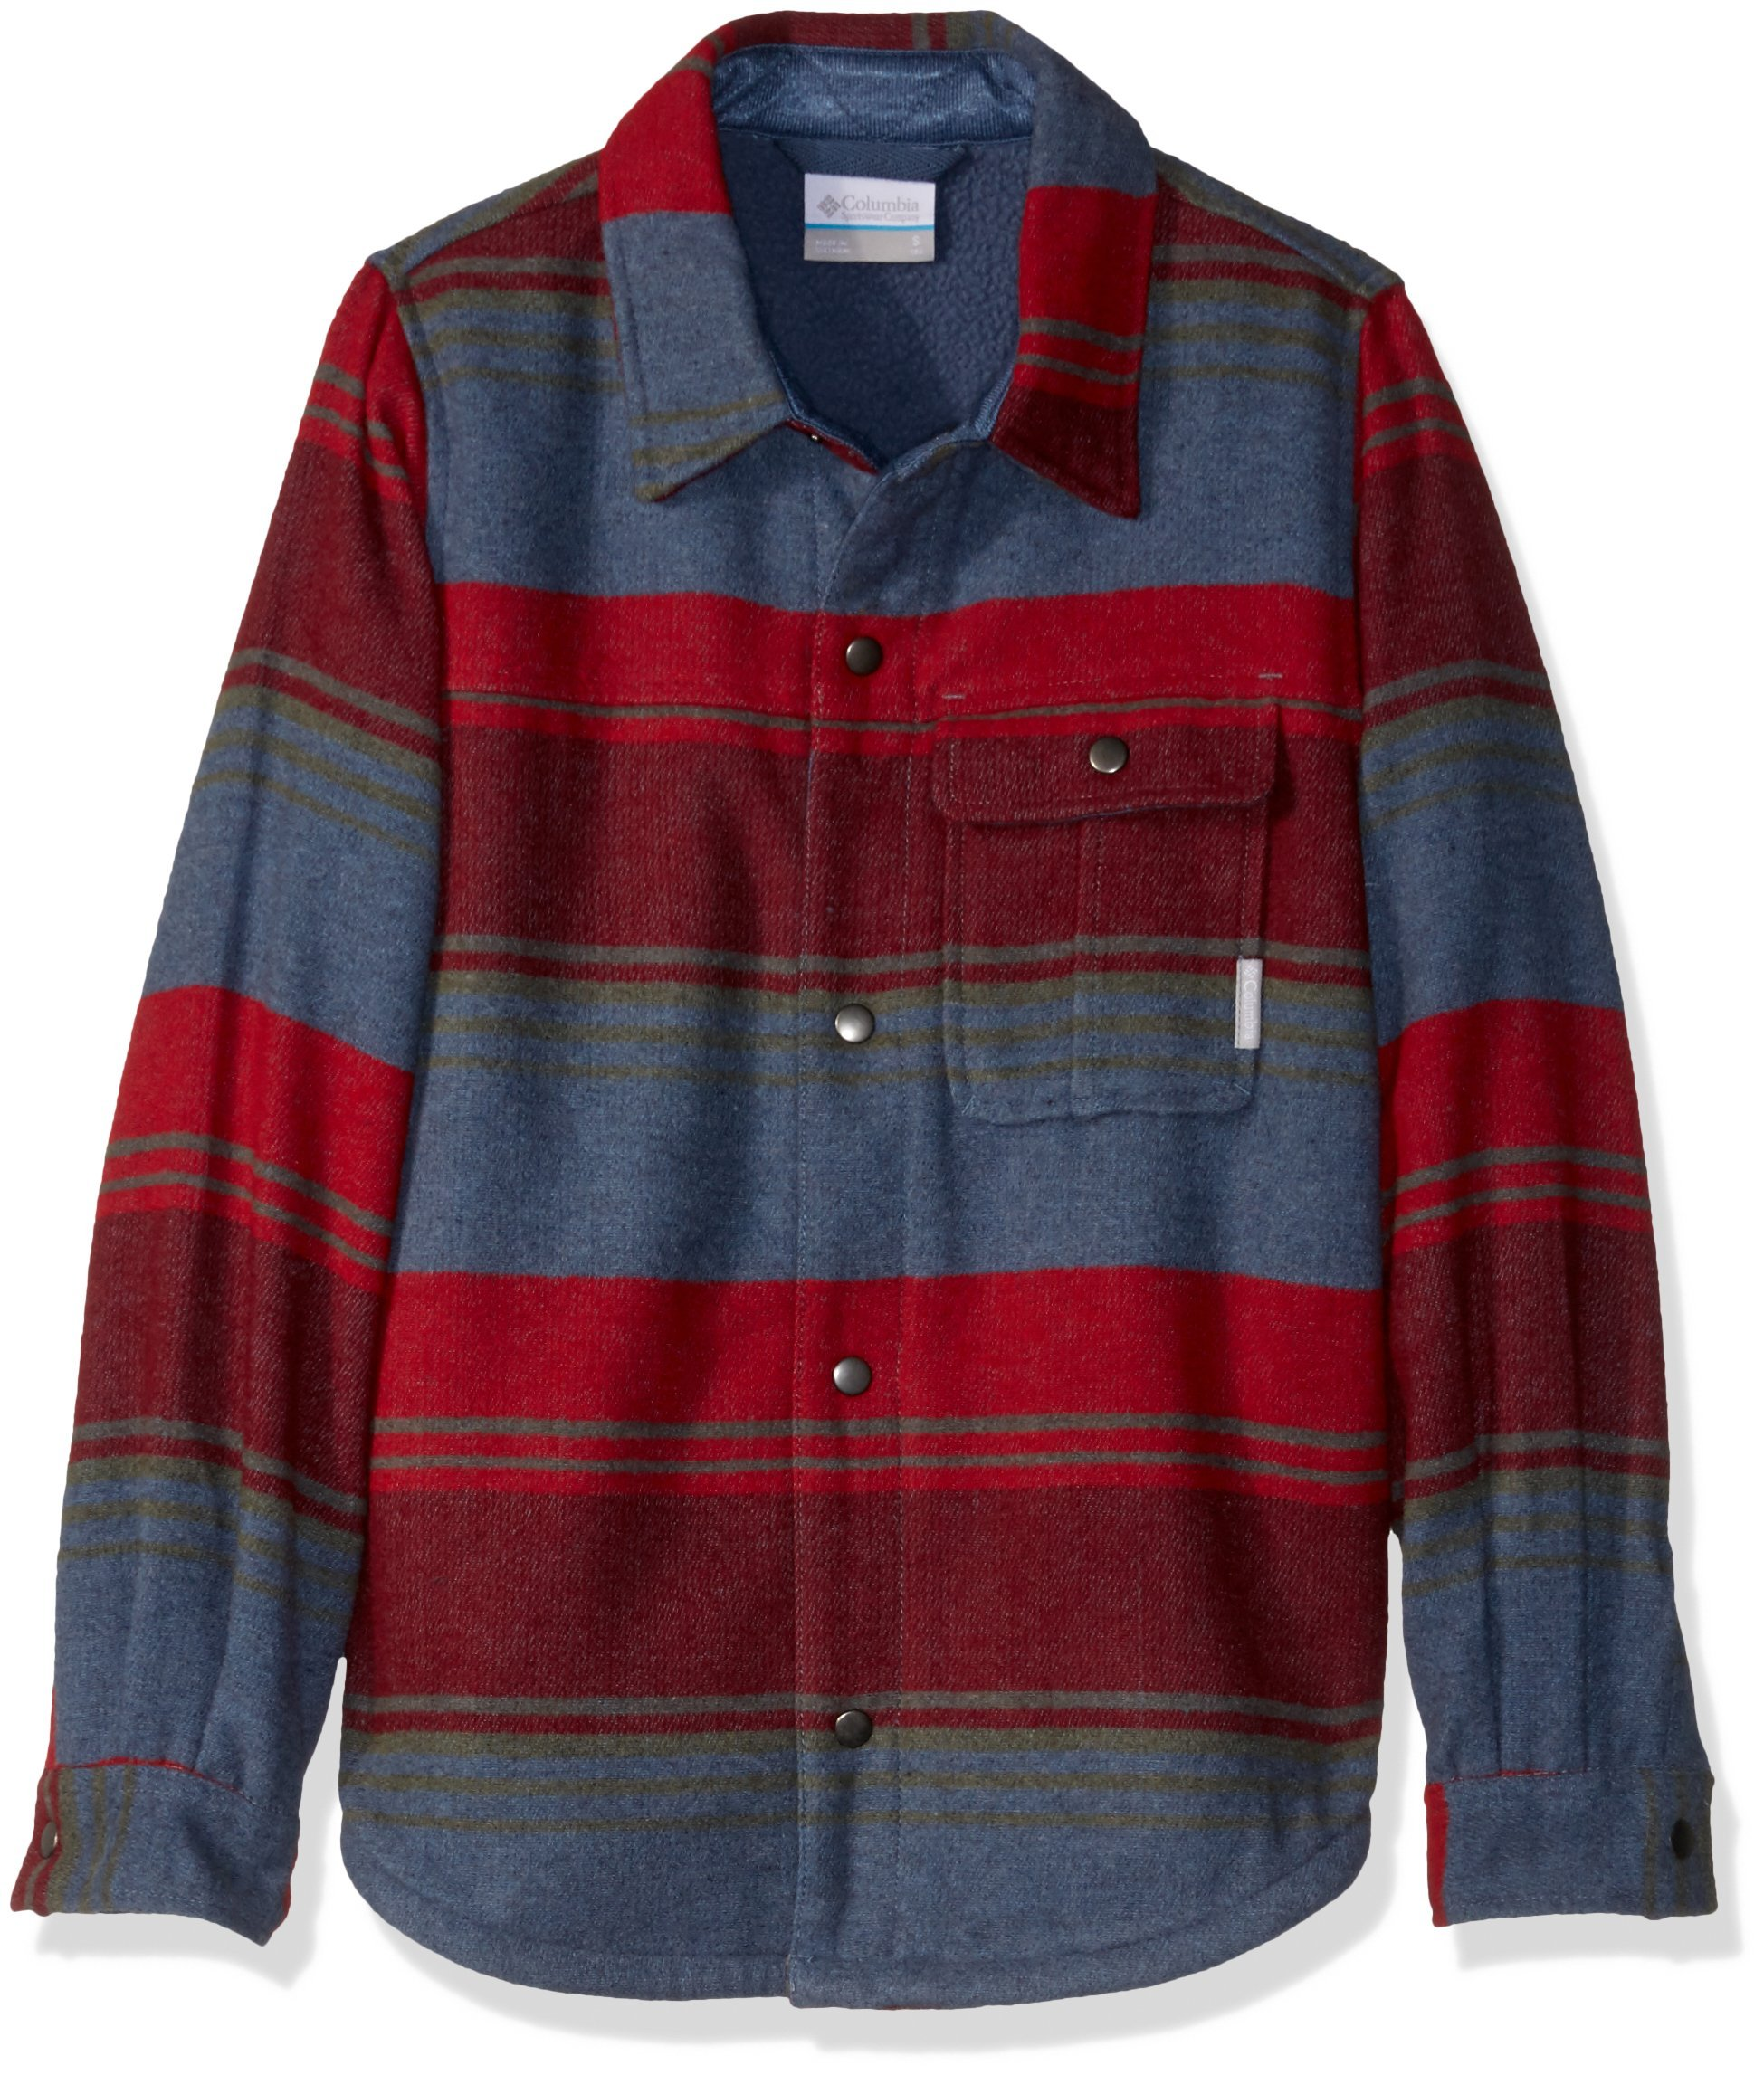 Columbia Boys' Little Windward Sherpa-Lined Shirt Jacket, Dark Mountain Stripes, XX-Small by Columbia